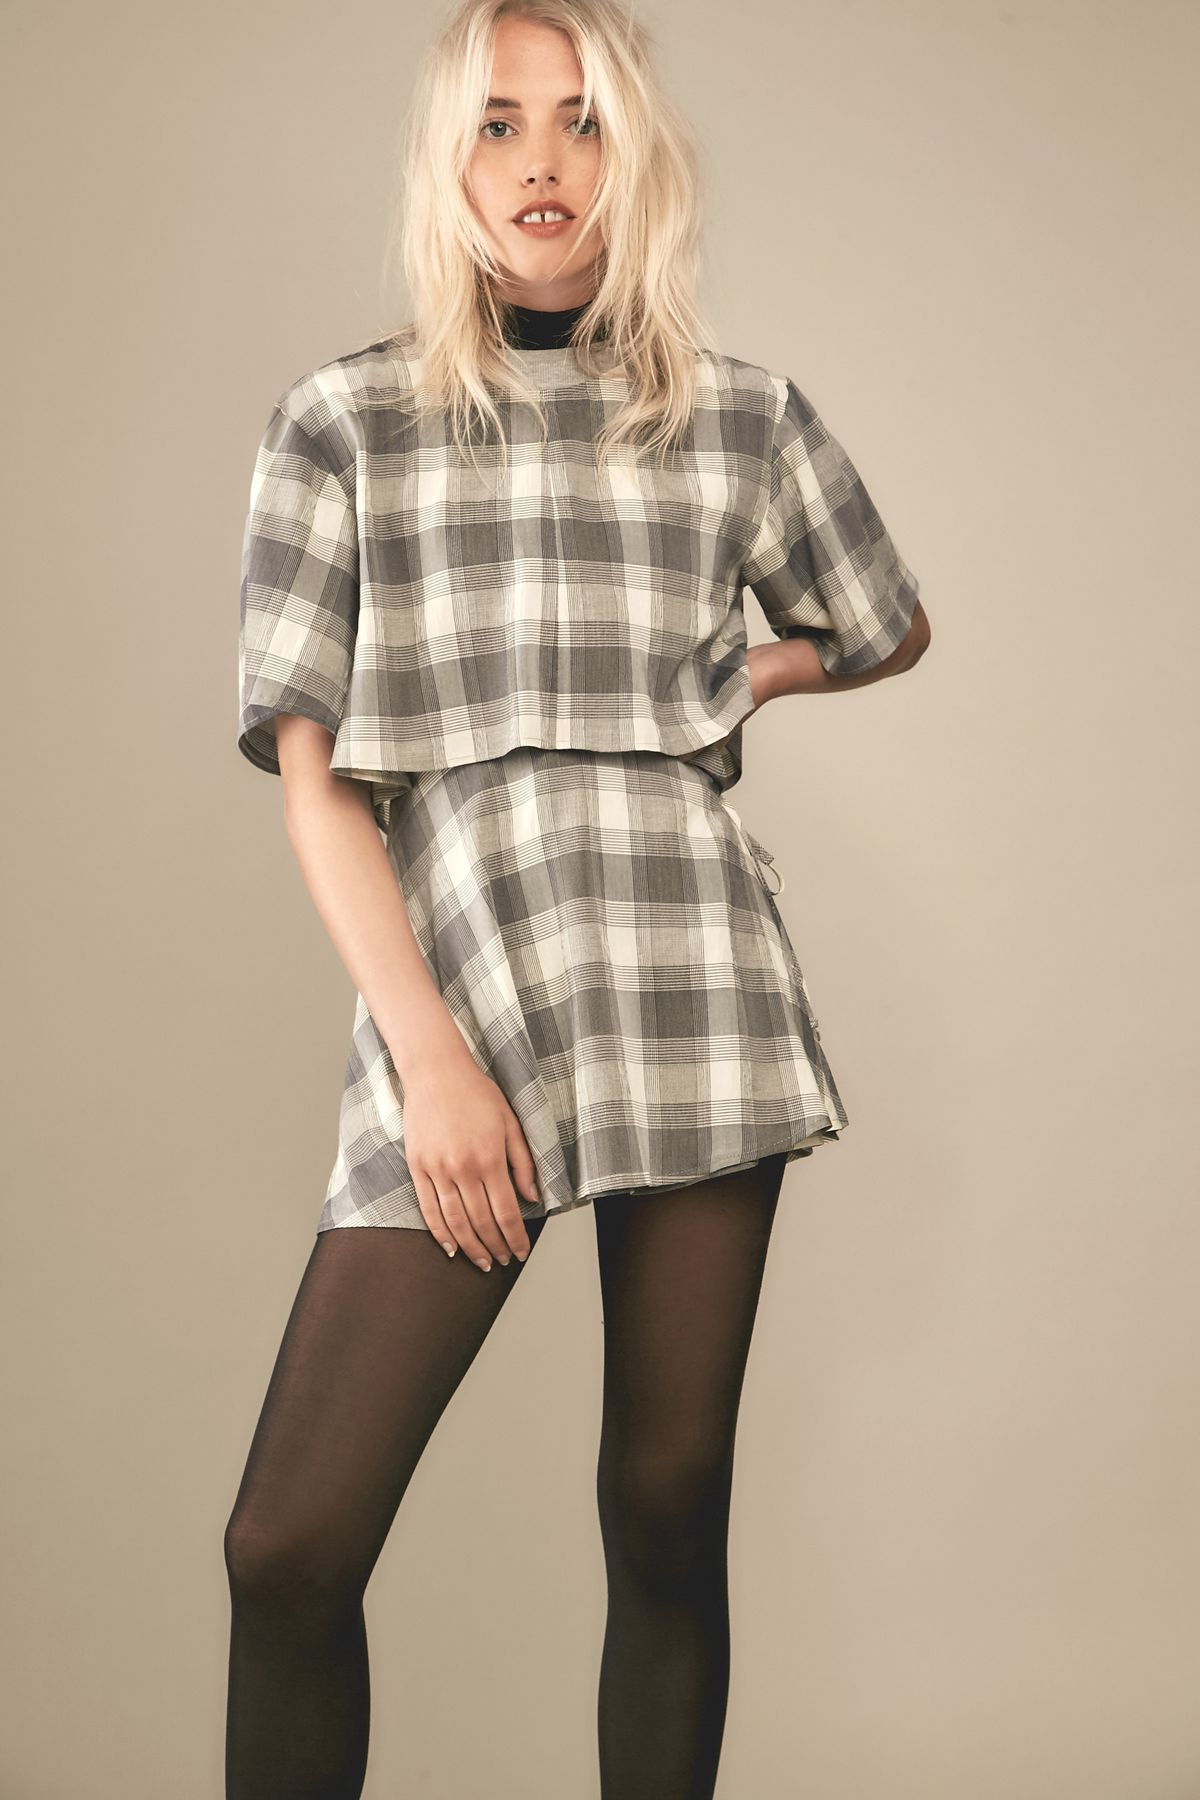 Blonde white model facing camera wearing plaid top and skirt with black tights